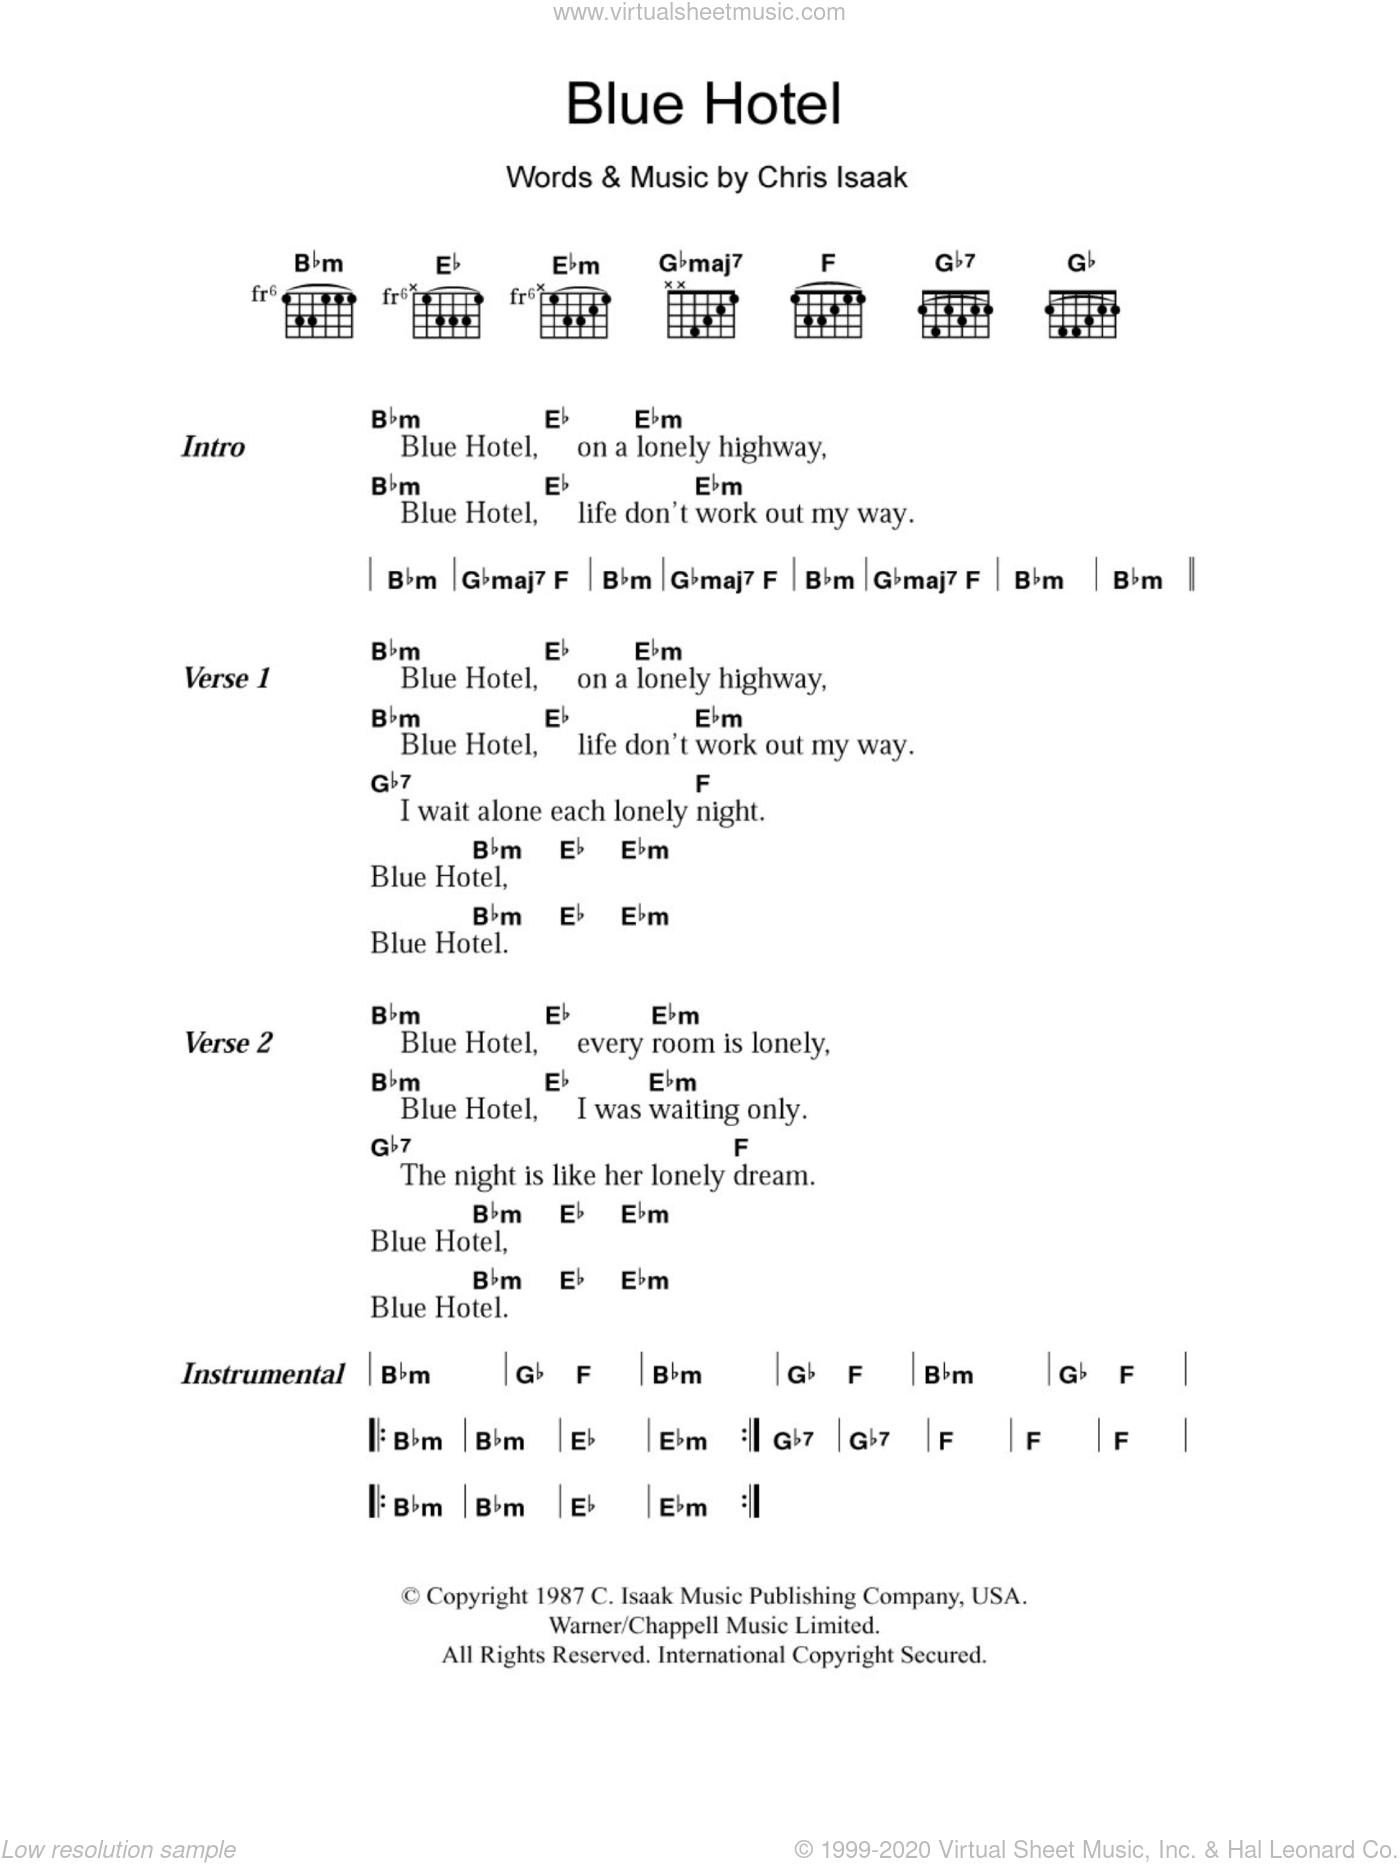 Blue Hotel sheet music for guitar (chords) by Chris Isaak